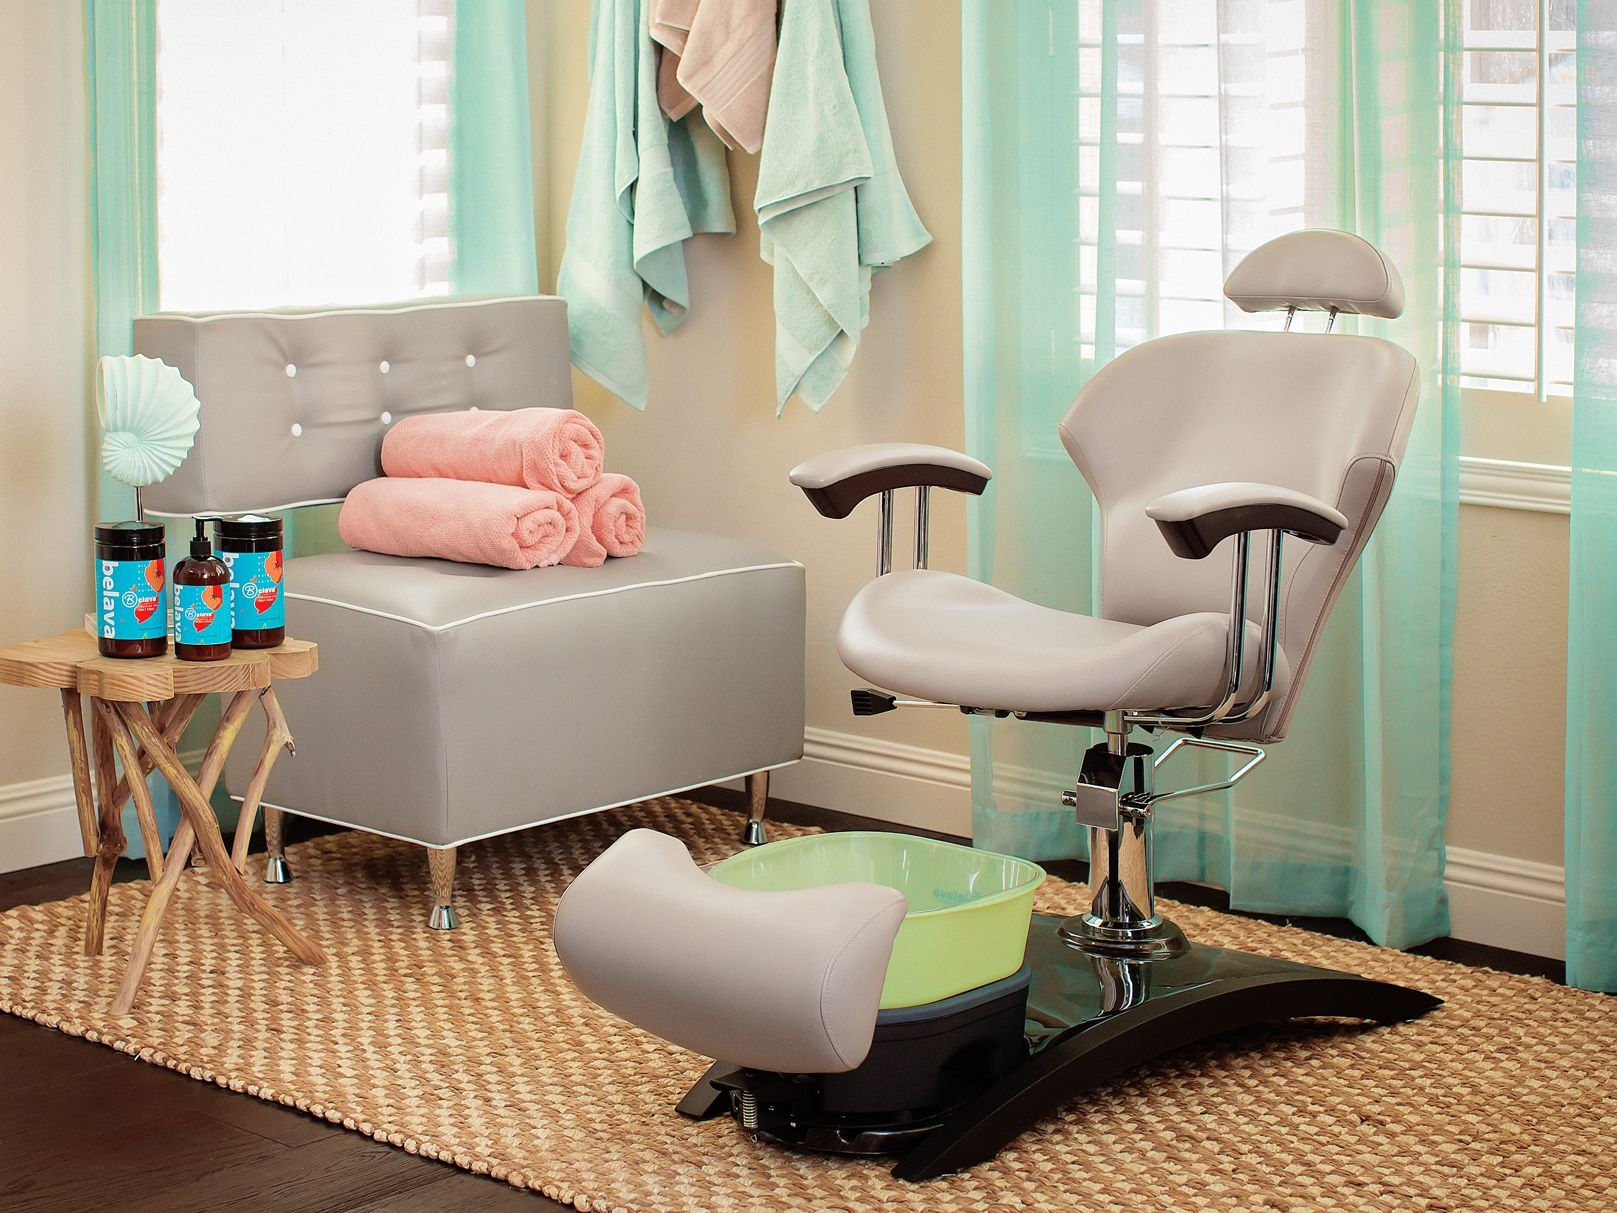 Belava Pedicure Chair Pedicure Chair Indulgence No Plumbing In 2019